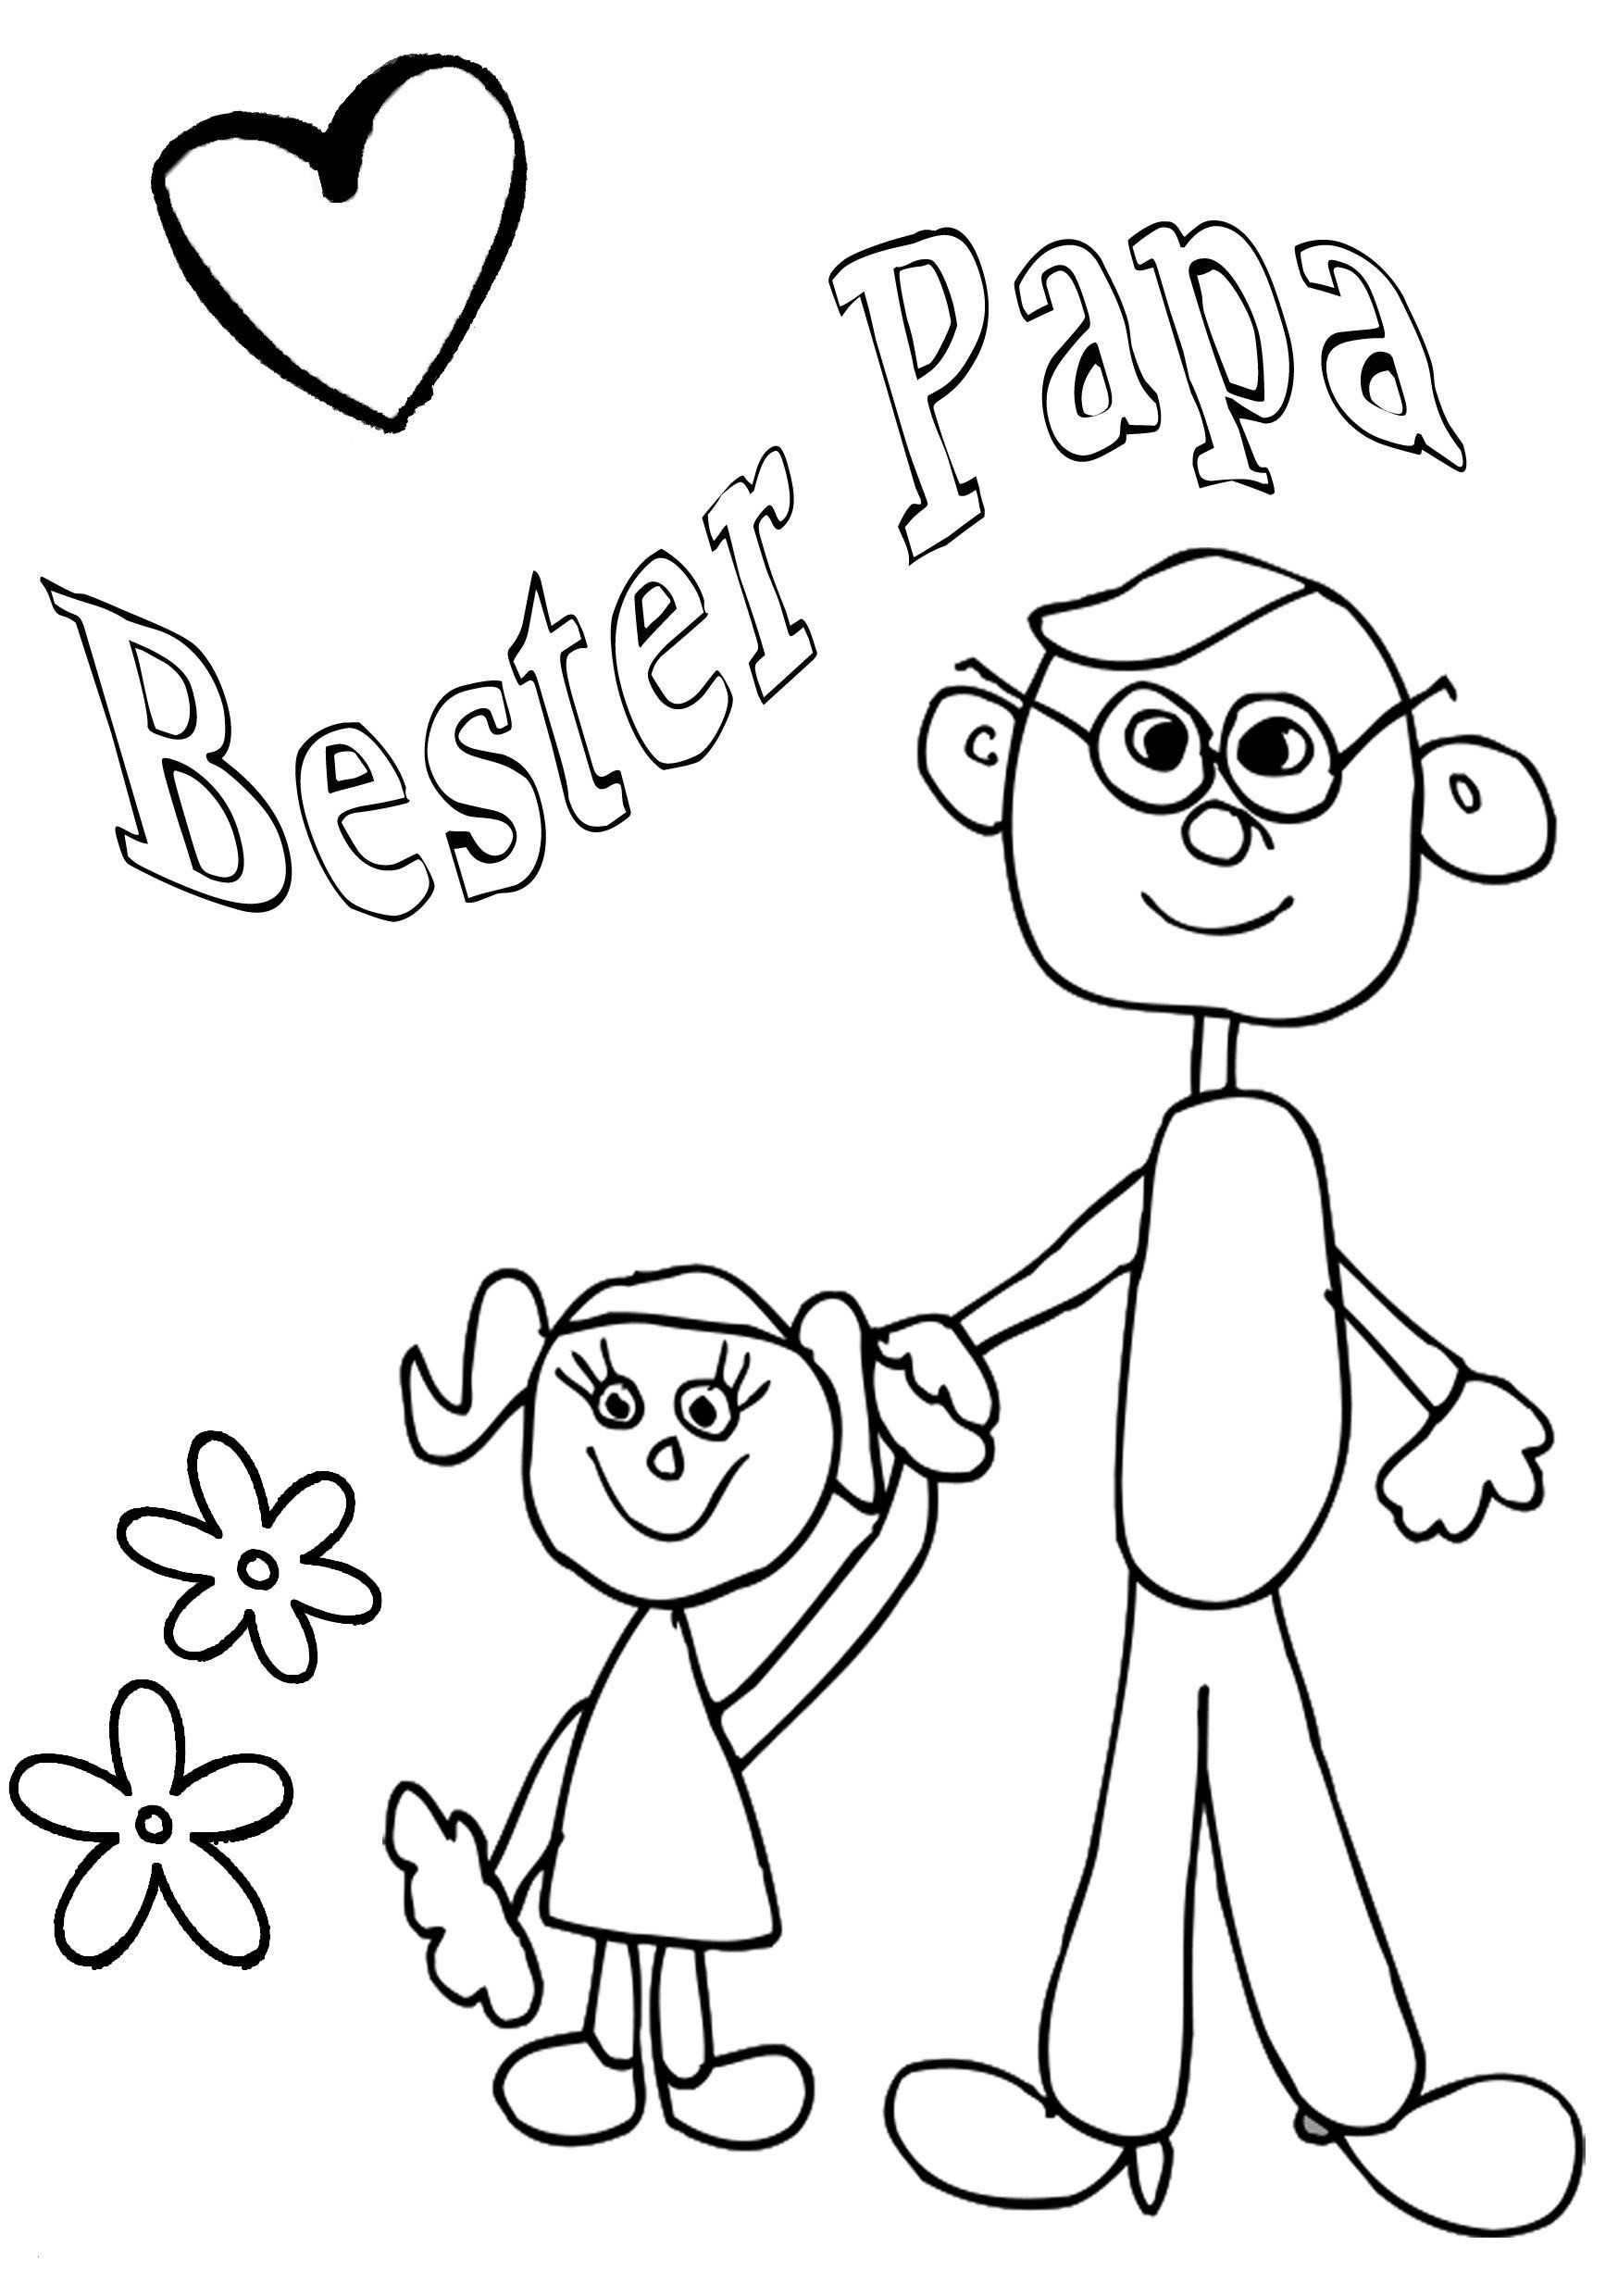 Micky Maus Baby Ausmalbilder Frisch Baby Mickey and Minnie Coloring Pages Mini Coloring Pages Frisch Das Bild